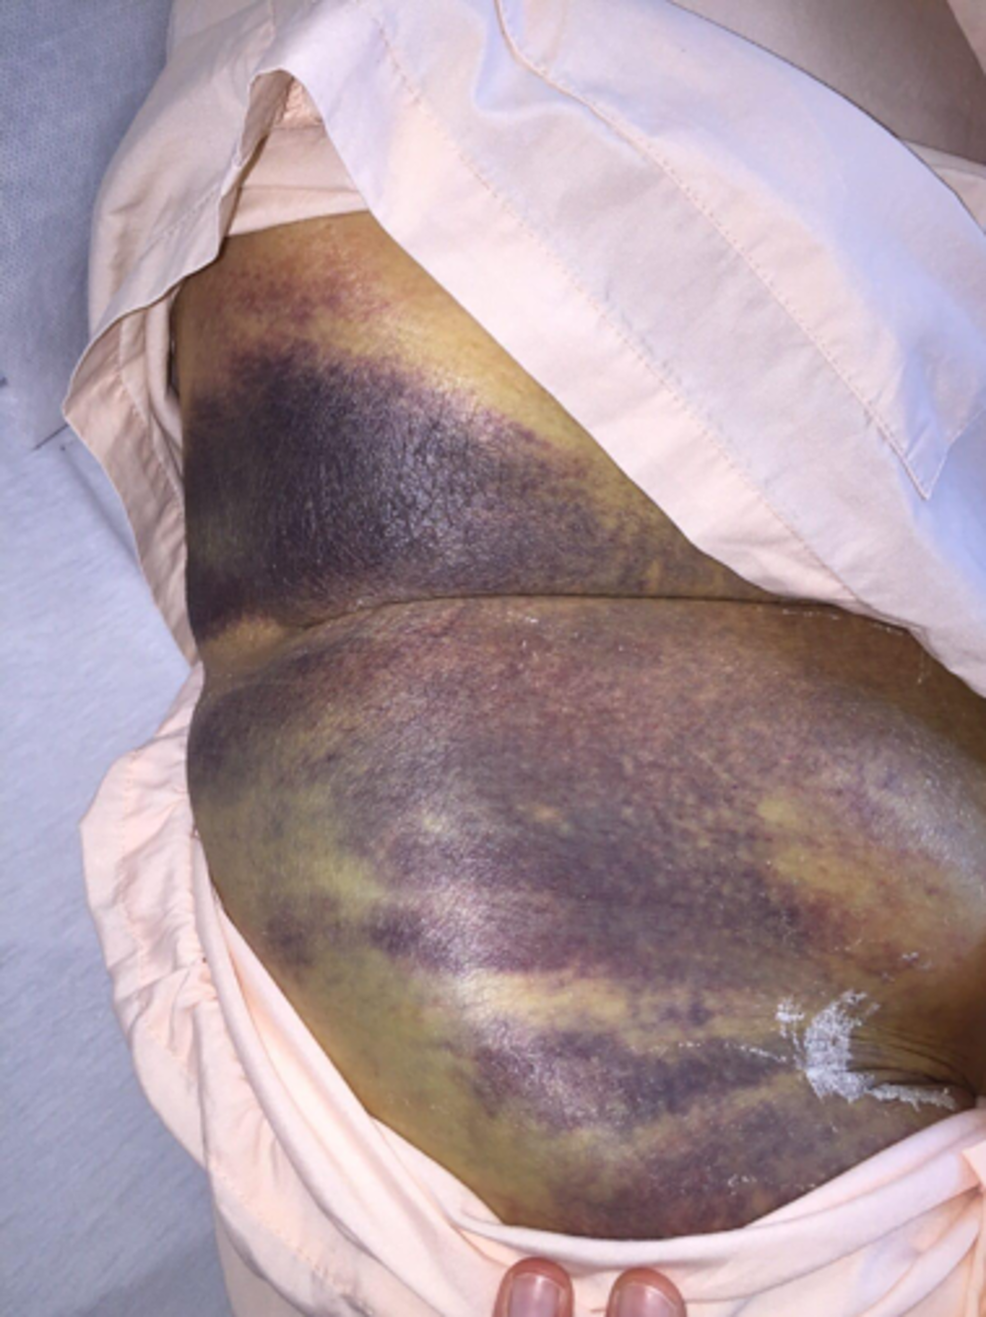 Extensive-right-groin-ecchymosis-with-hematoma